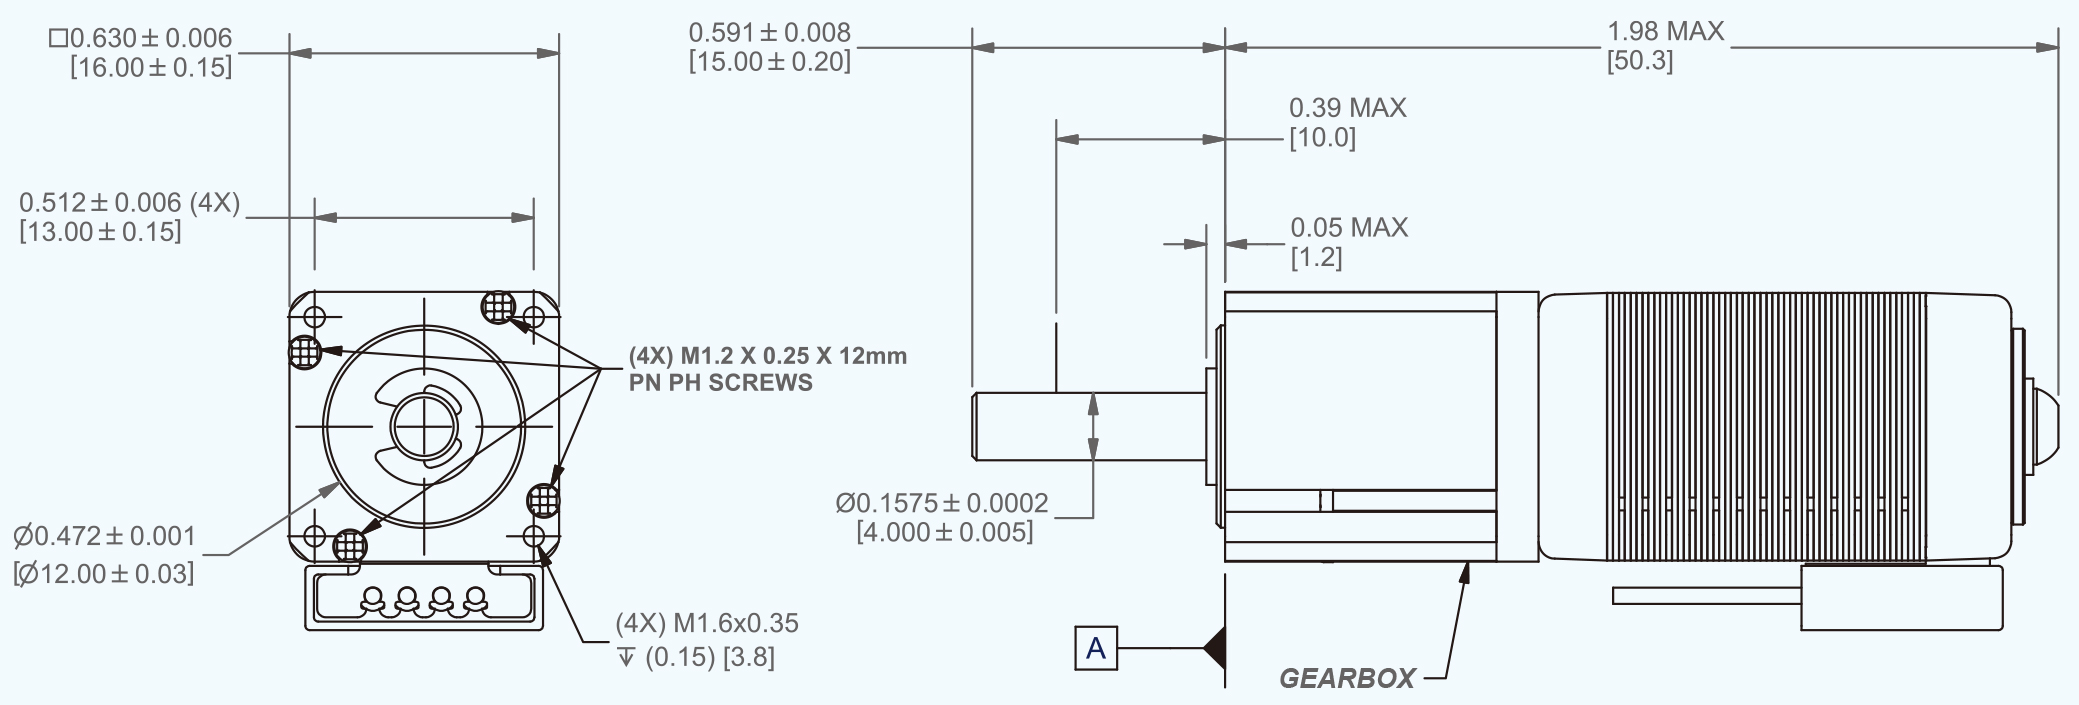 PT106 + gearbox dimensions